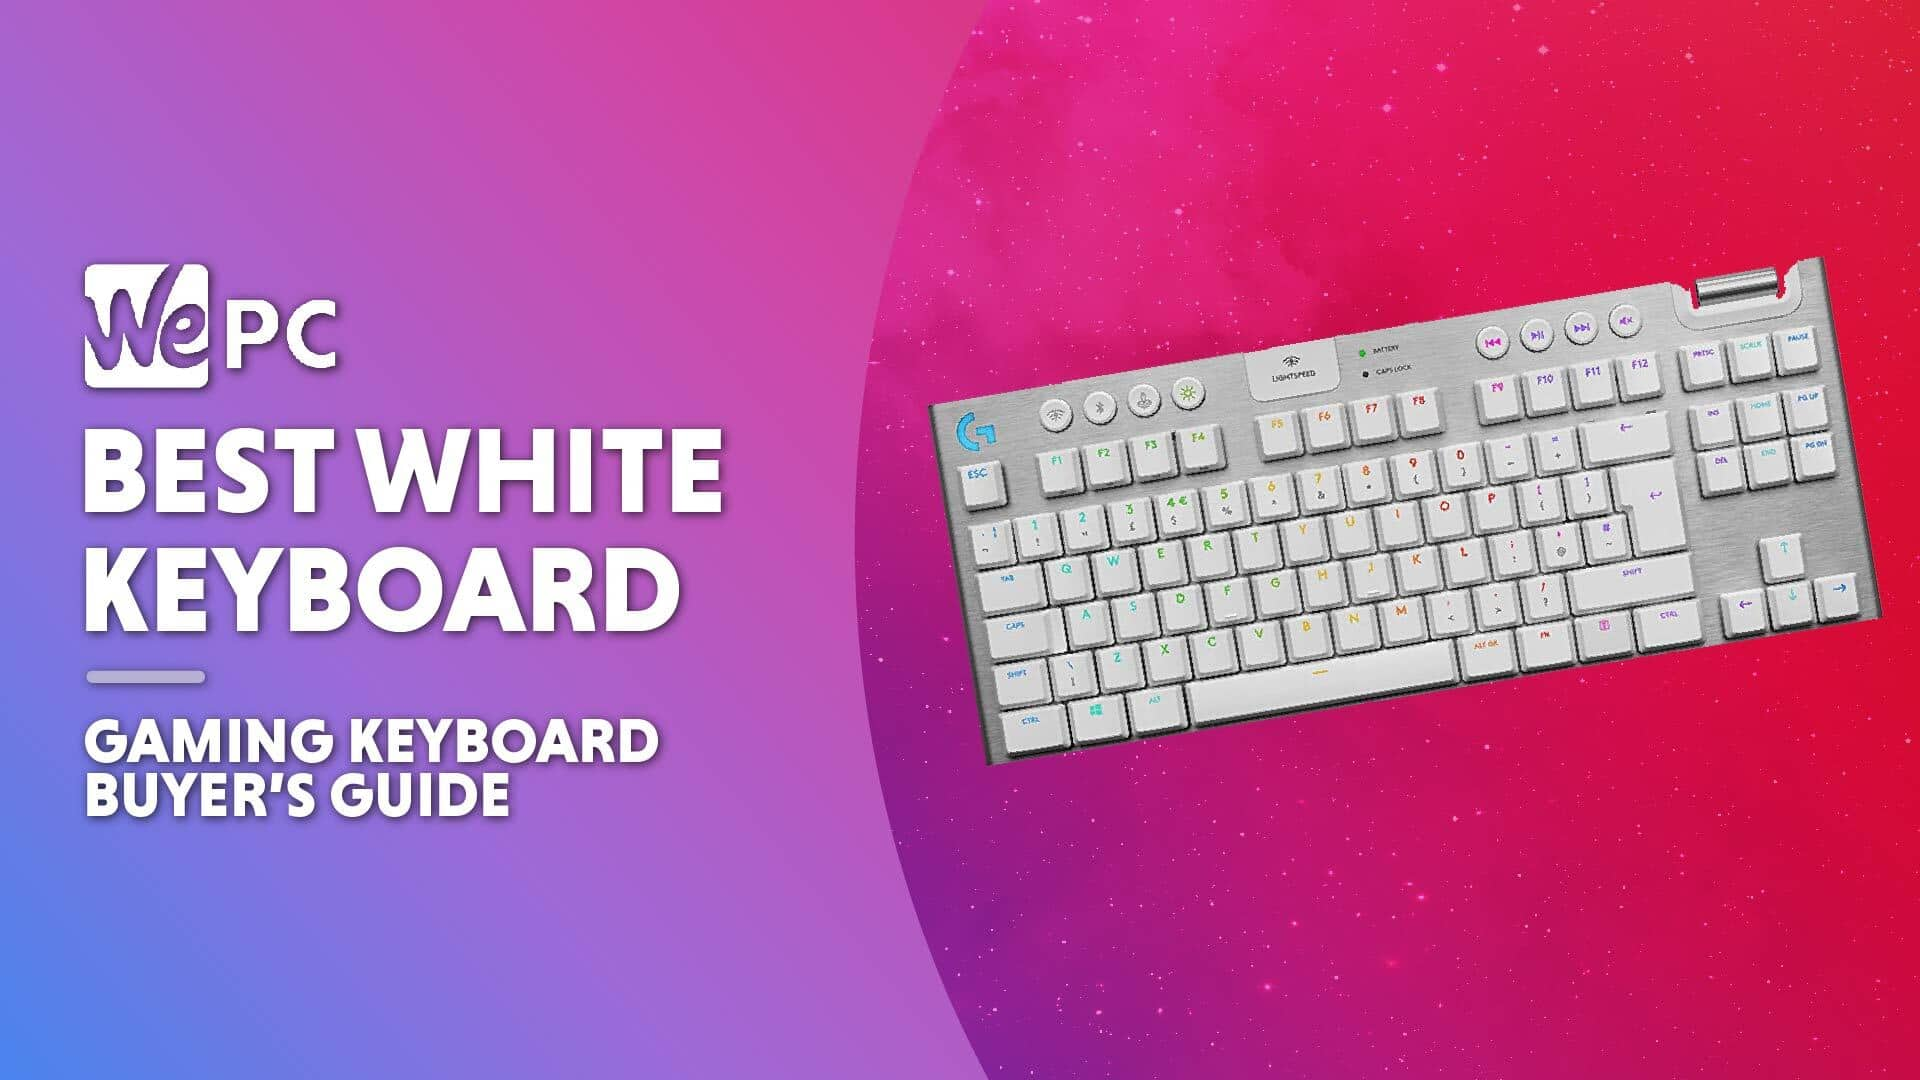 WEPC Best white keyboard Featured image 01